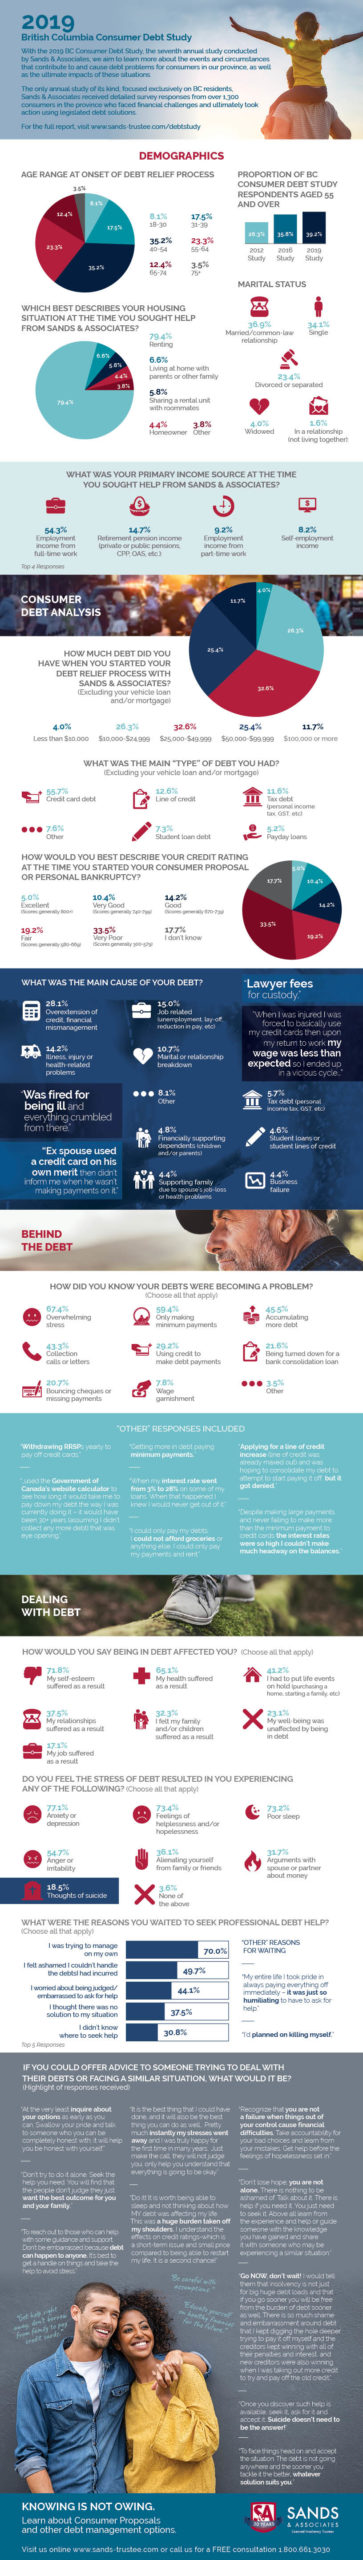 Sands & Associates 2019 BC Consumer Debt Study Infographic